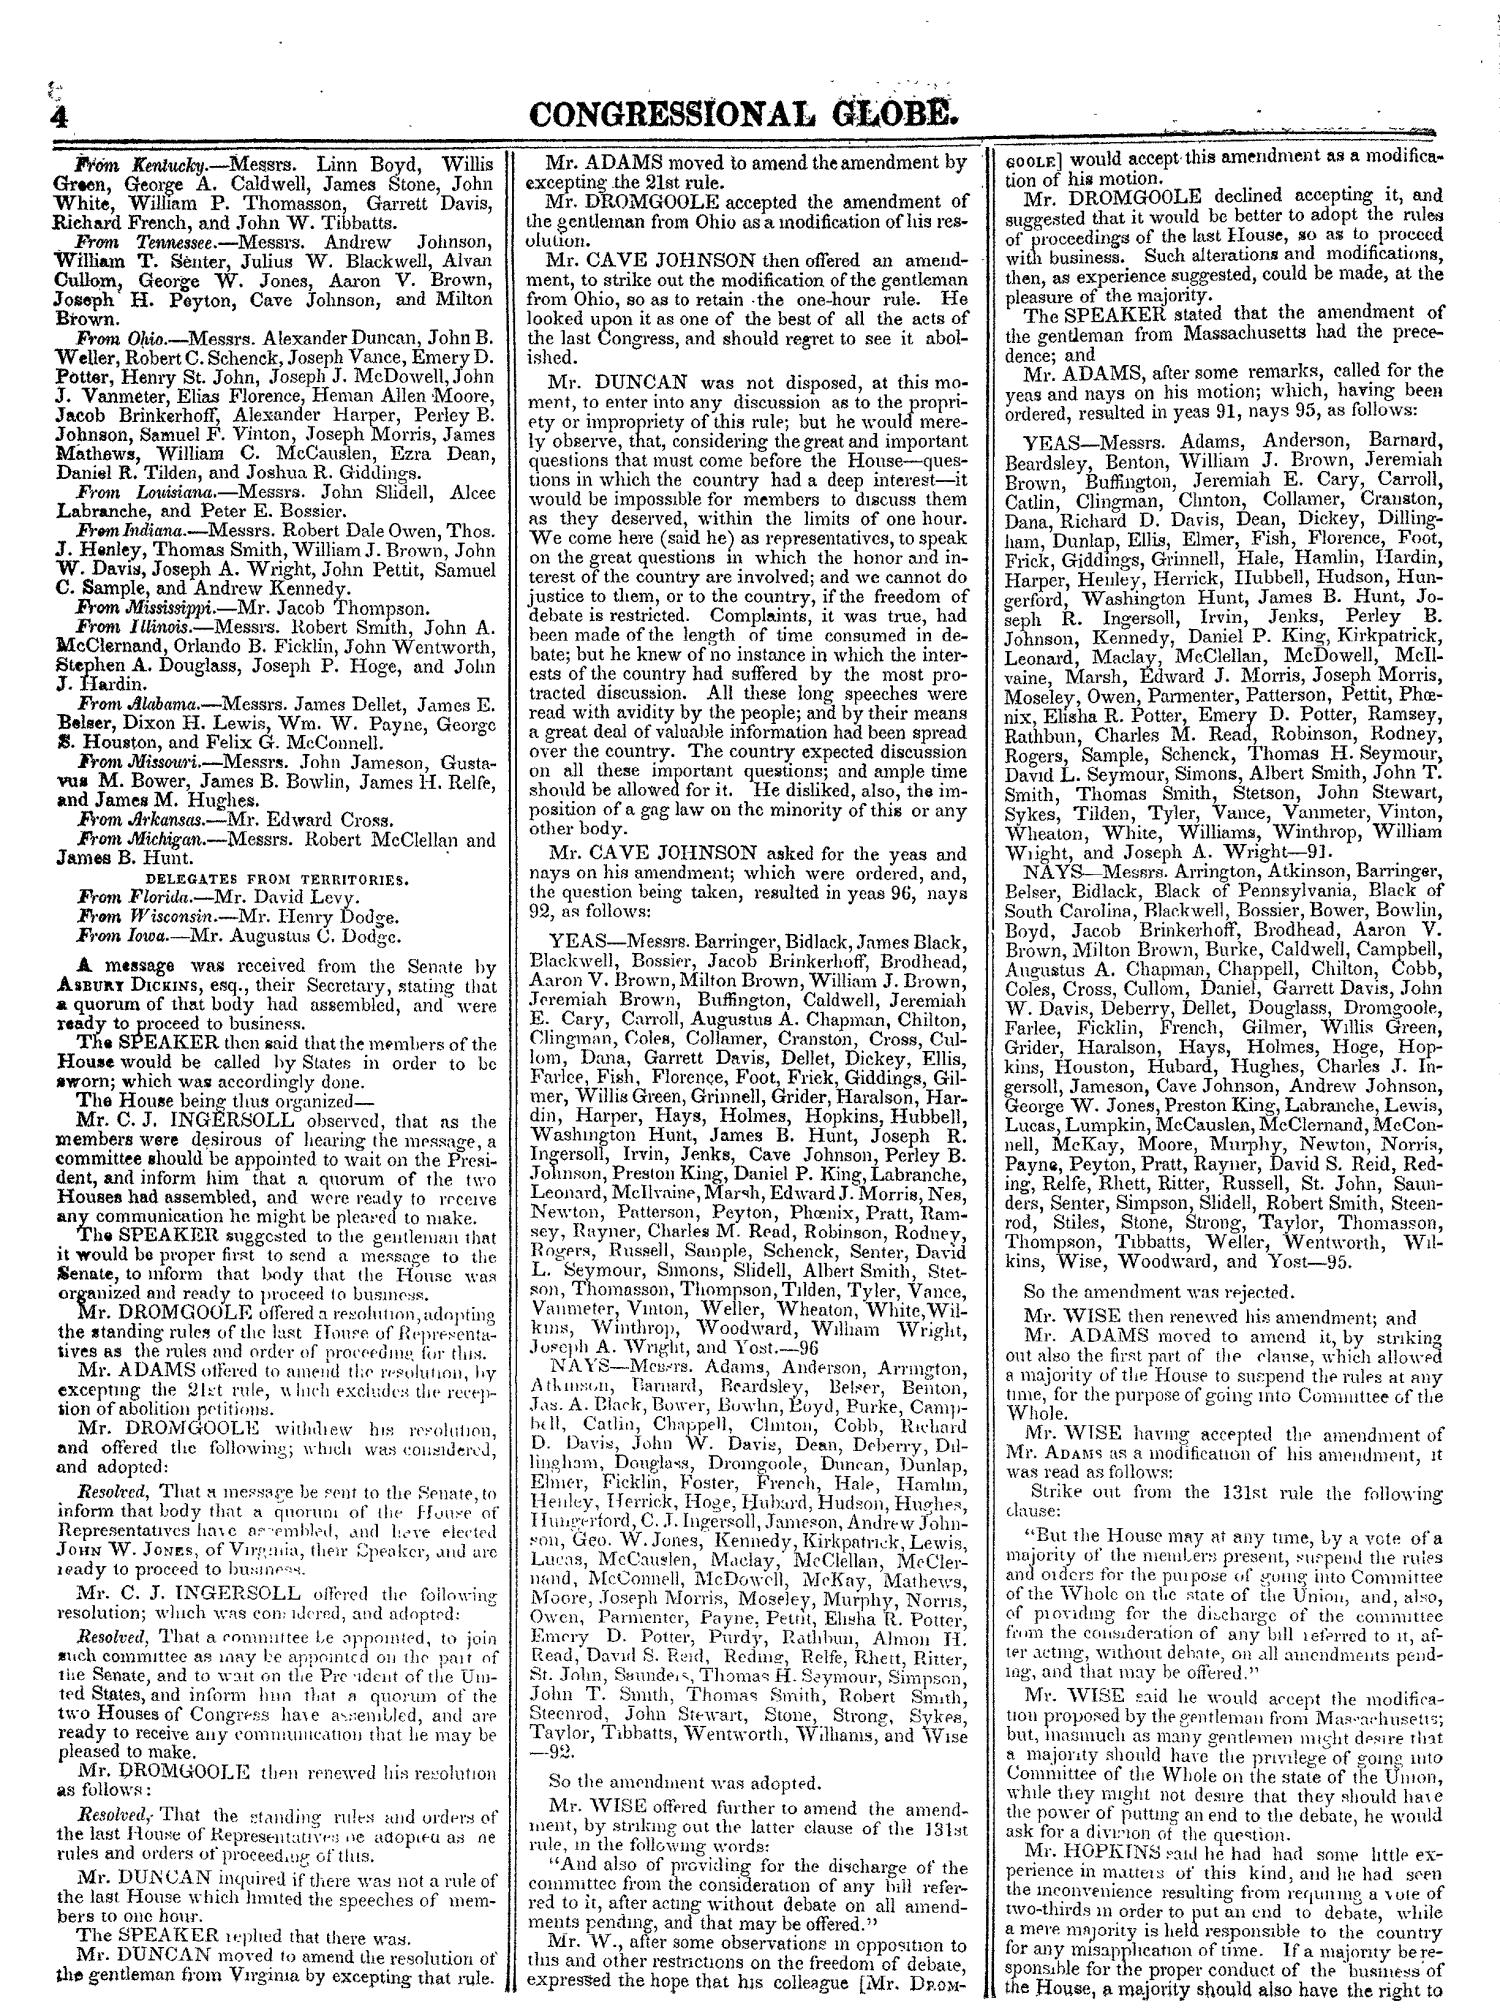 The Congressional Globe, Volume 13, Part 1: Twenty-Eighth Congress, First Session                                                                                                      4